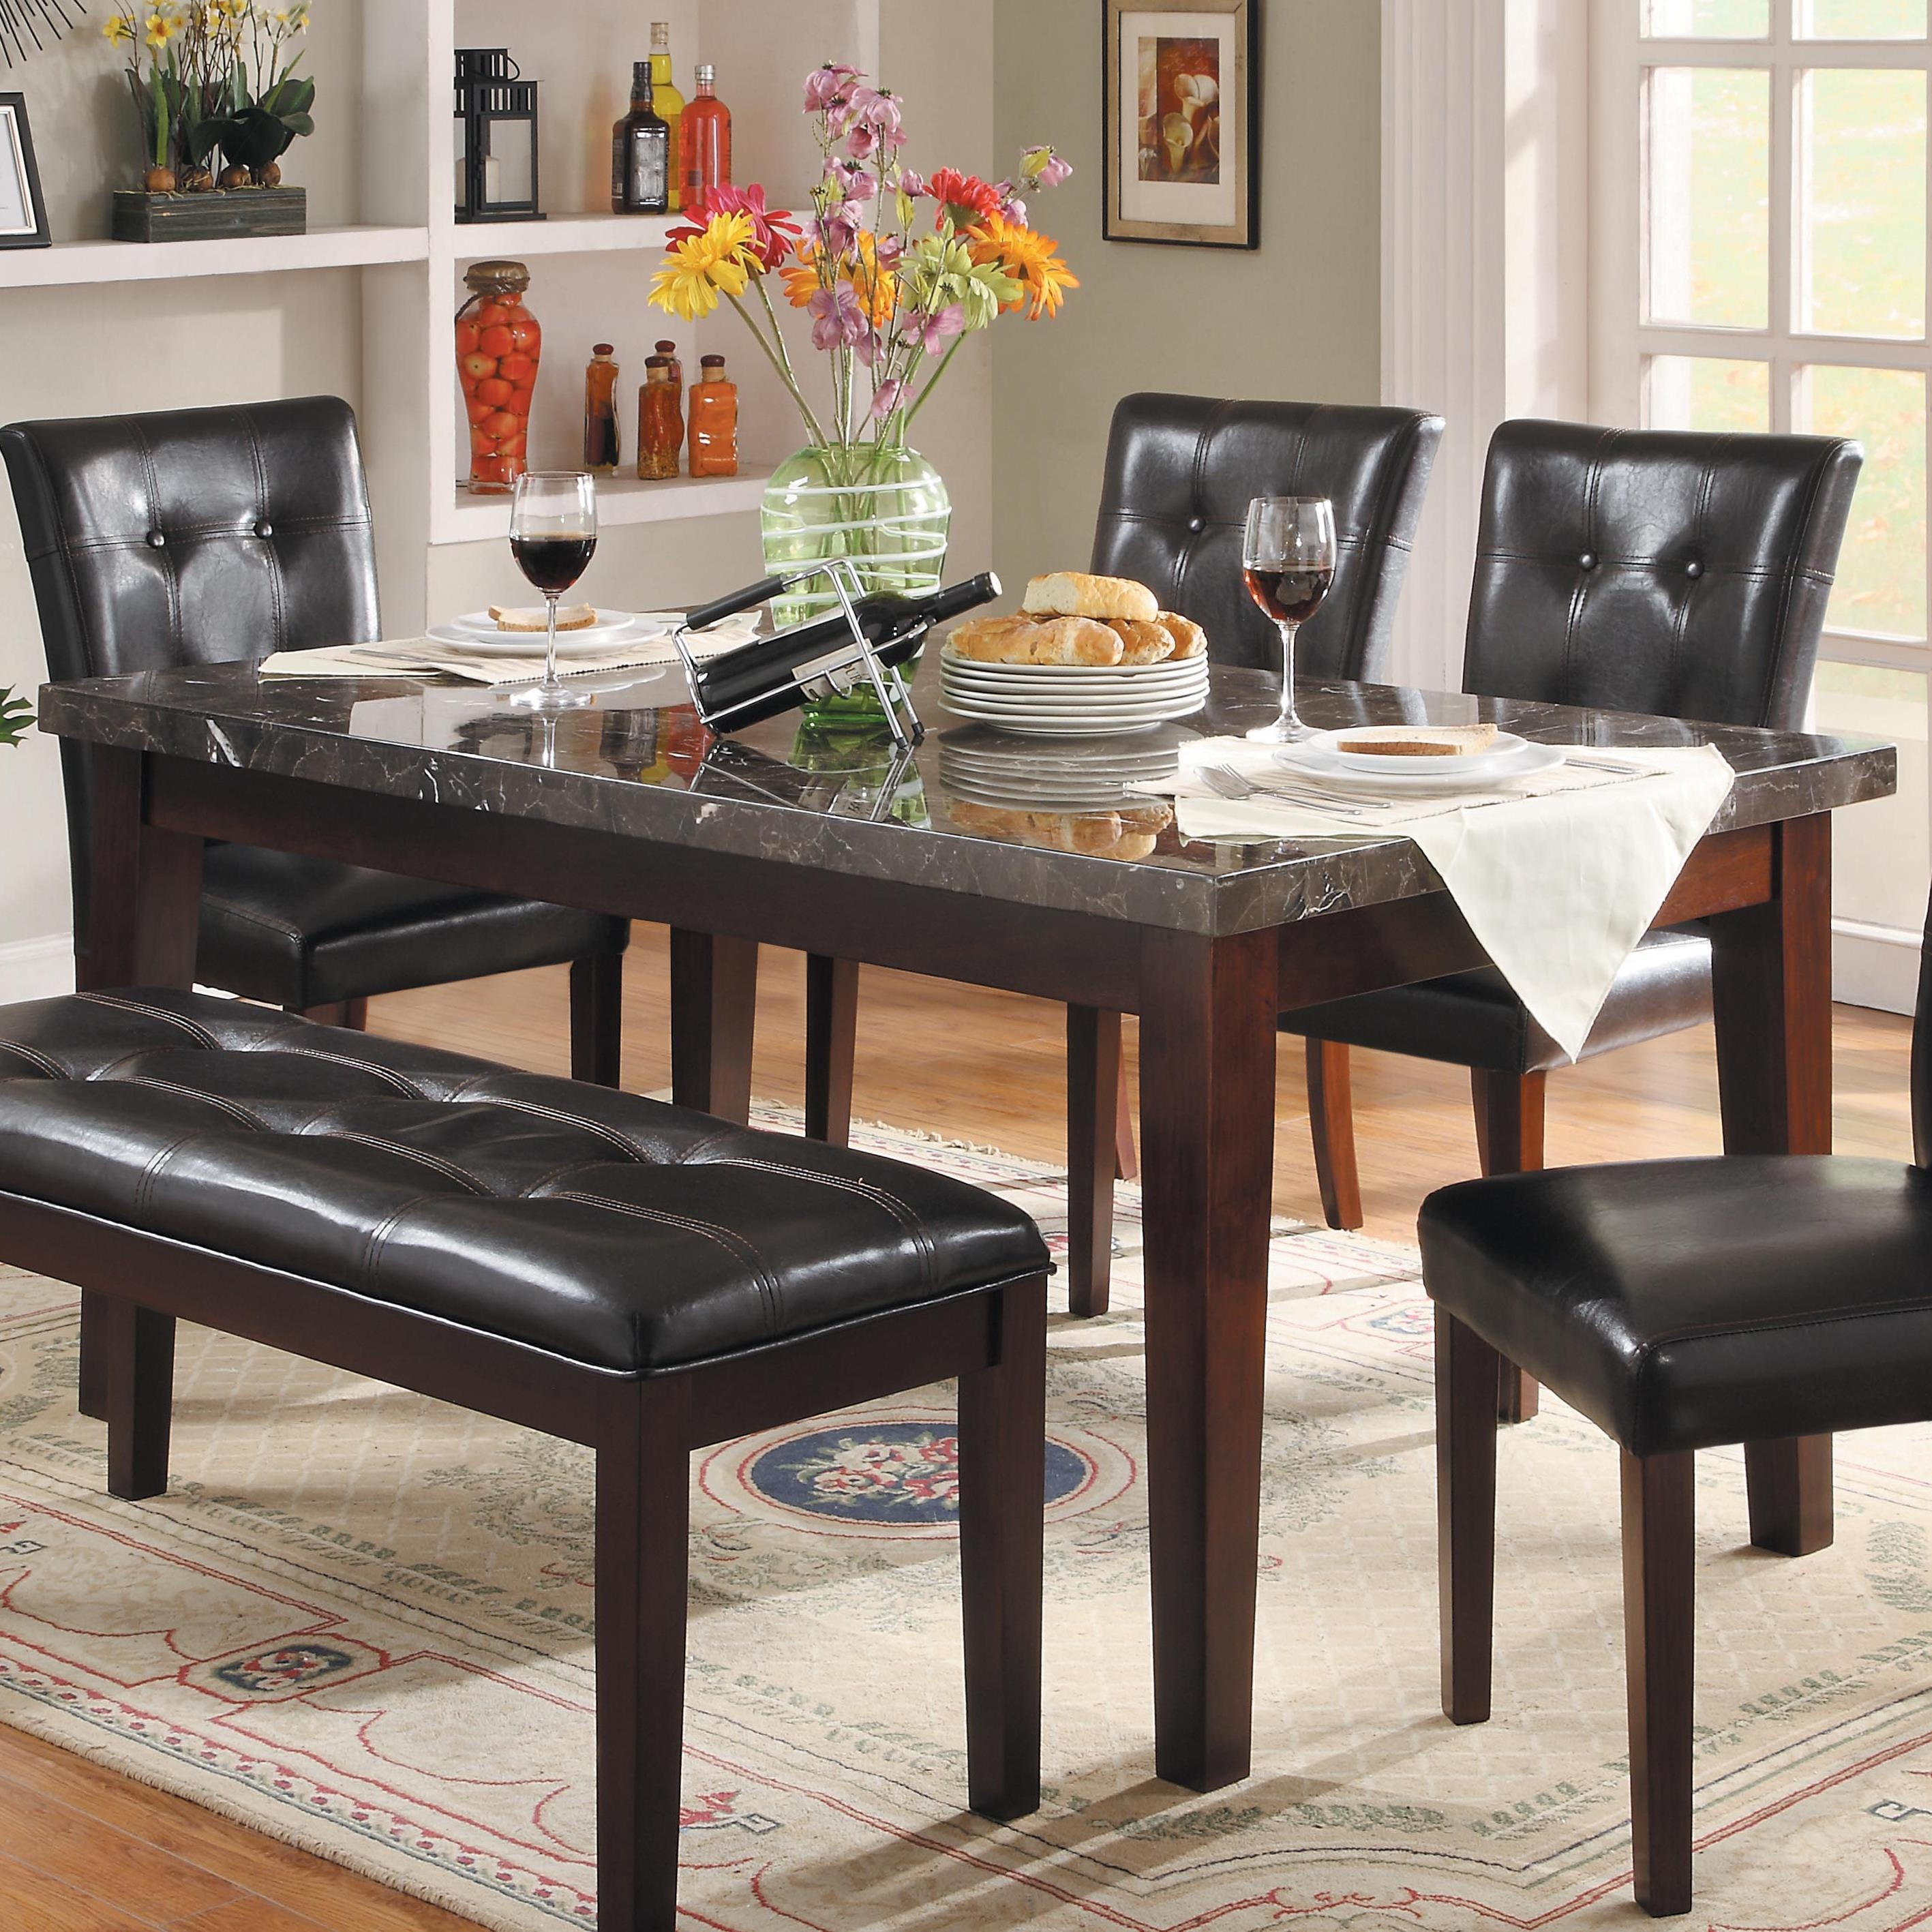 Homelegance Decatur Dining Table With Marble Top | Lindy's Furniture Regarding Most Recent Lindy Espresso Rectangle Dining Tables (Image 8 of 20)